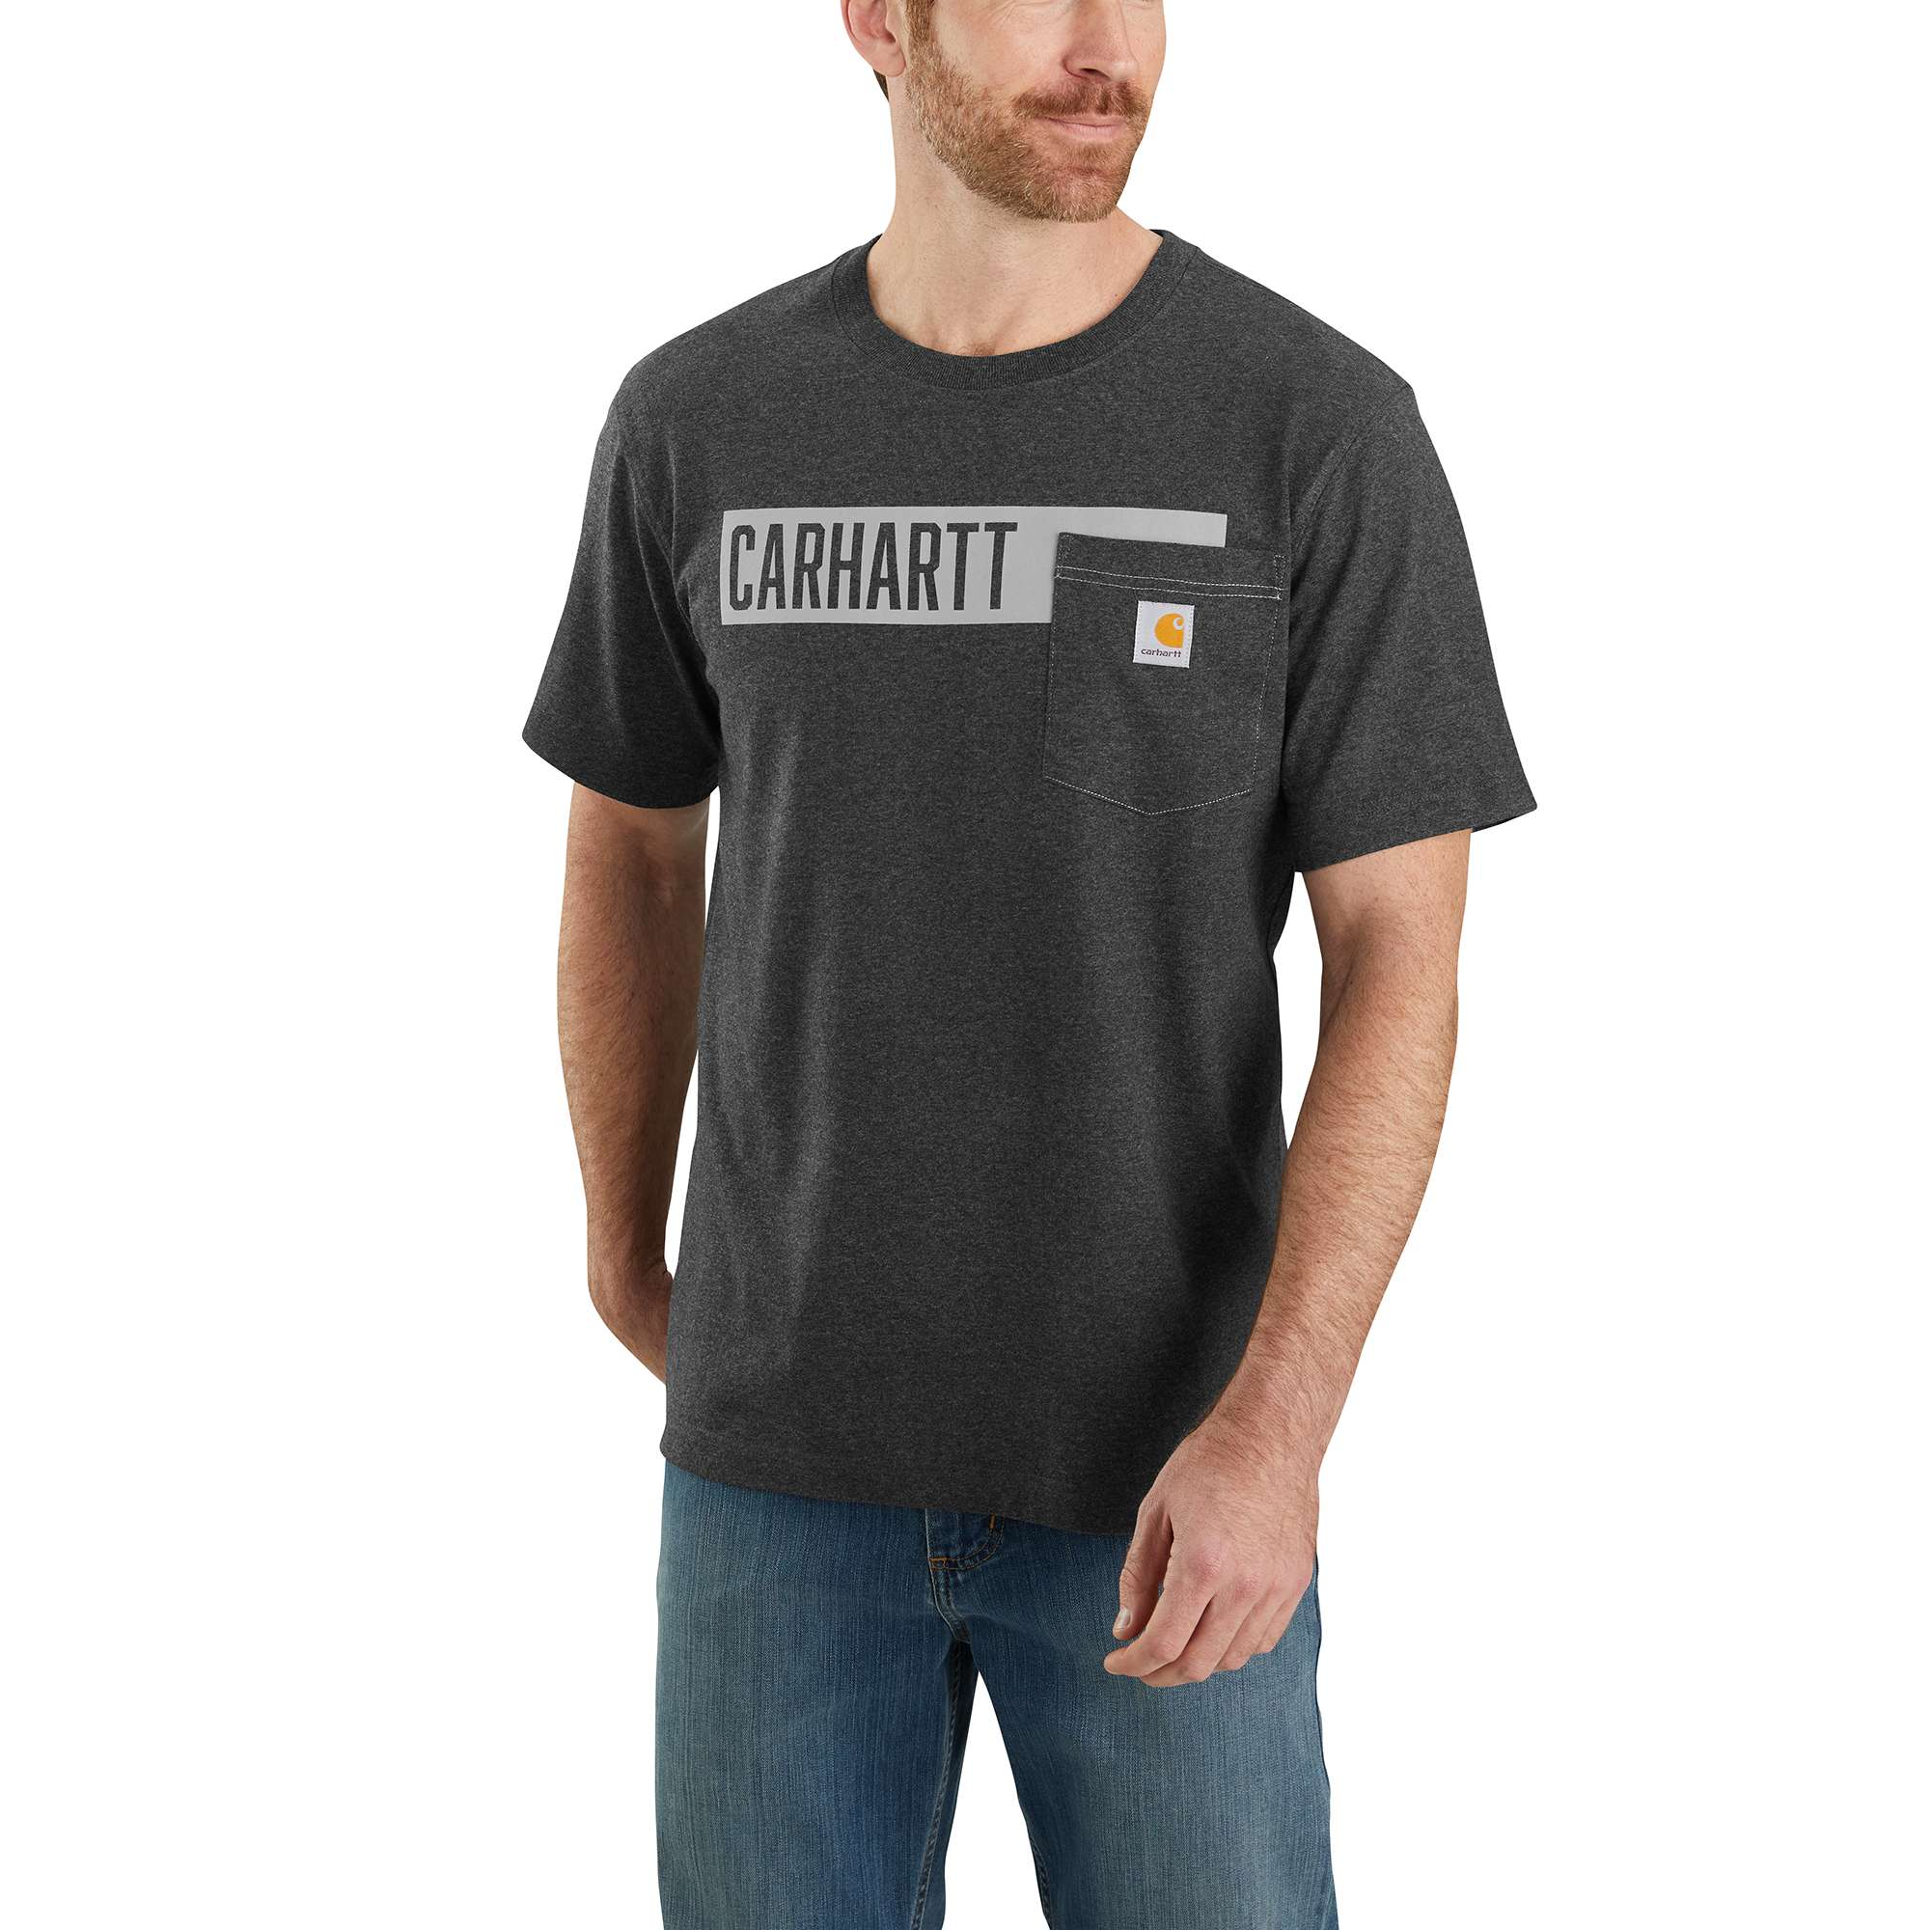 Carhartt Relaxed Fit Heavyweight Short-Sleeve Pocket Stripe Graphic T-Shirt